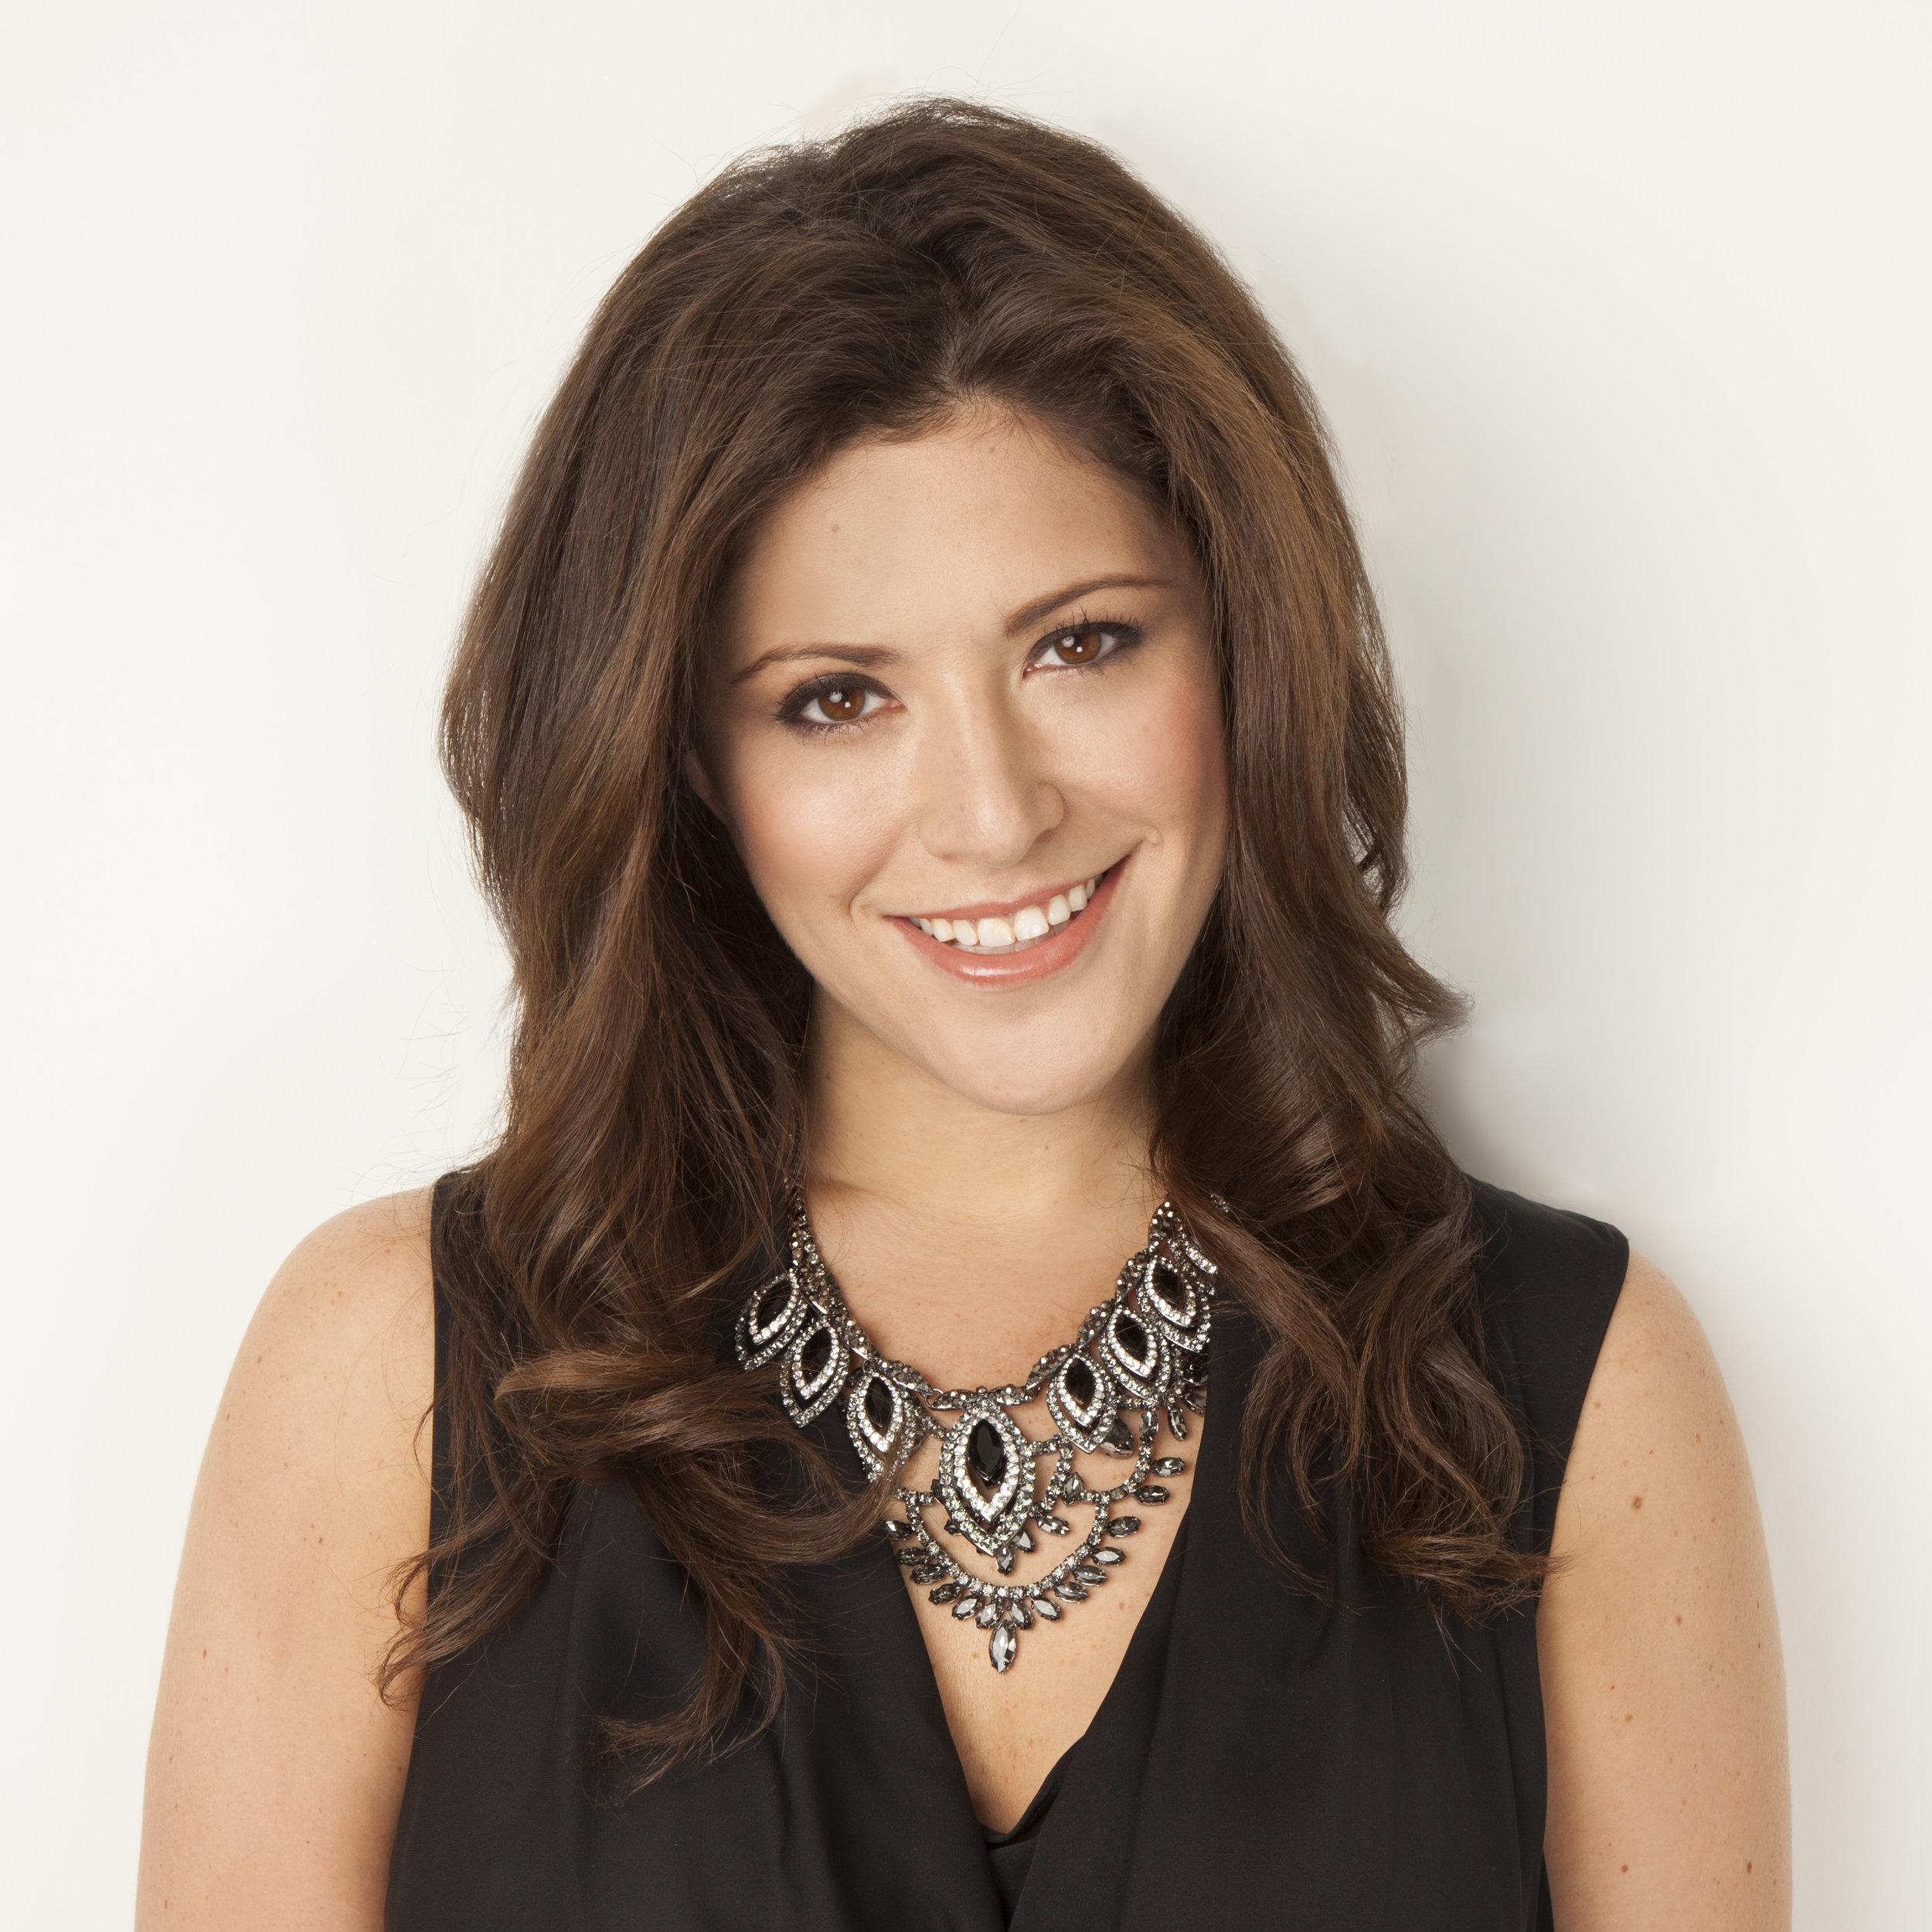 """Panelist    Daniella Yacobovsky  Co-Founder, Baublebar  """"Becoming An Entrepreneur: How To Build A Business"""""""